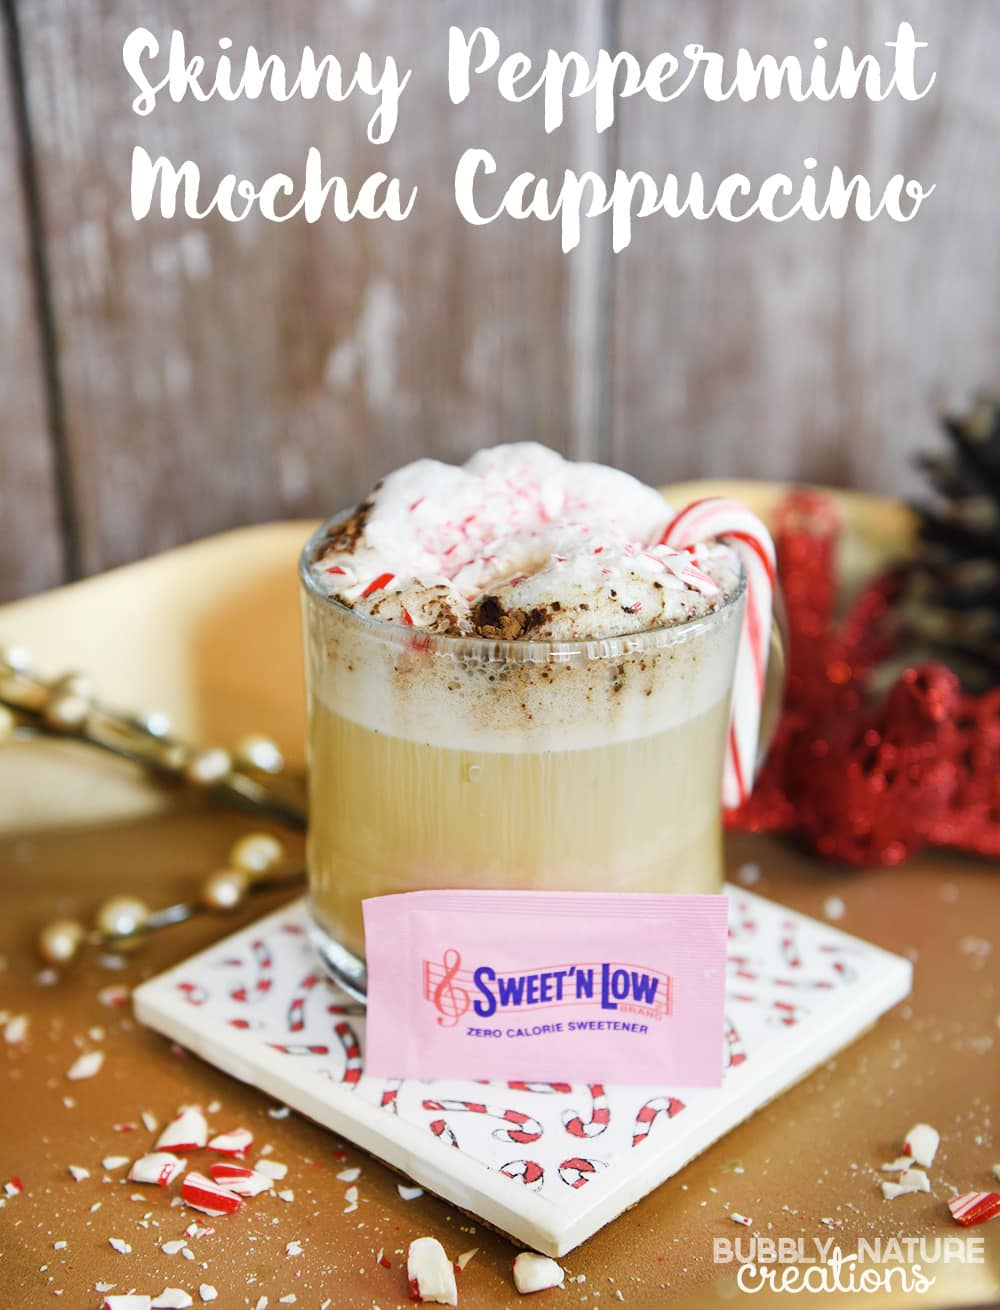 Skinny Peppermint Mocha Cappuccino! Such a yummy holiday drink!!